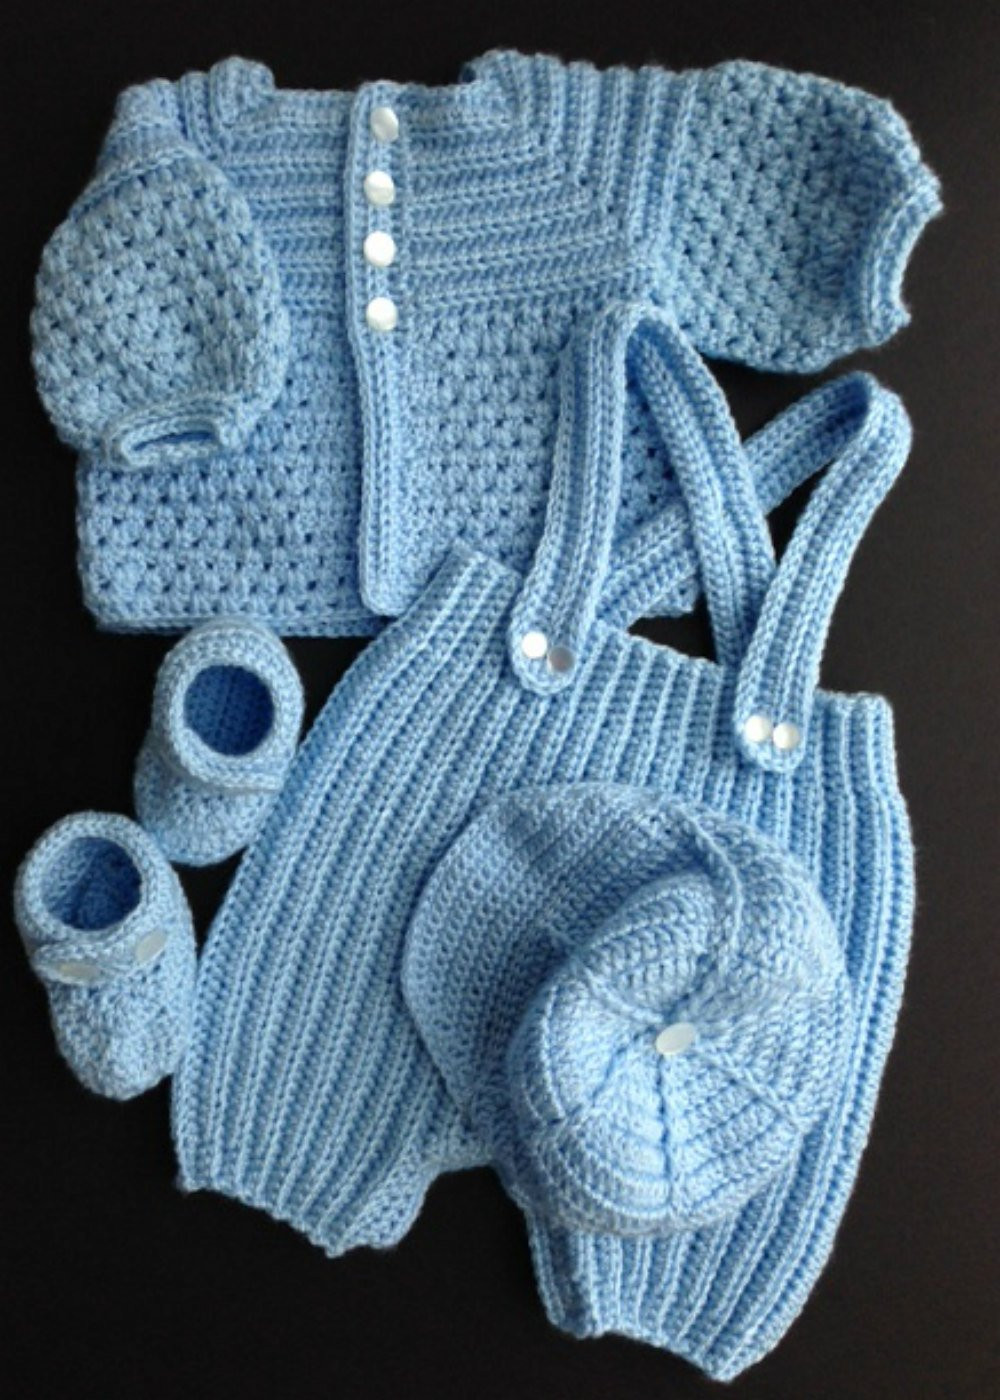 Baby Boy Crochet Patterns Unique Baby Boy Crocheted Outfit Of Awesome 41 Models Baby Boy Crochet Patterns